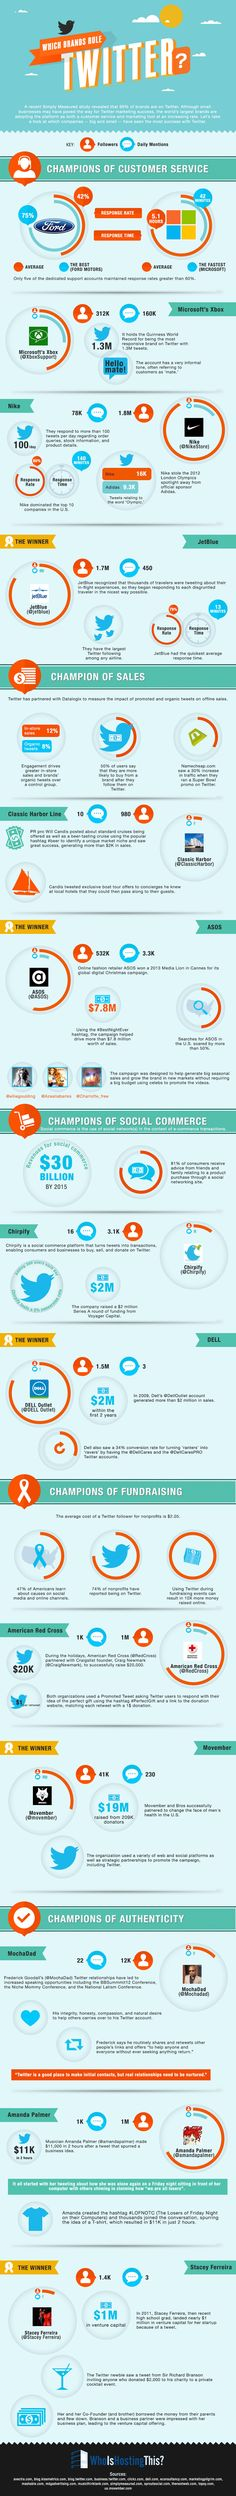 Which Brands Rule Twitter   #Infographic #Twitter #SocialMedia #Brands